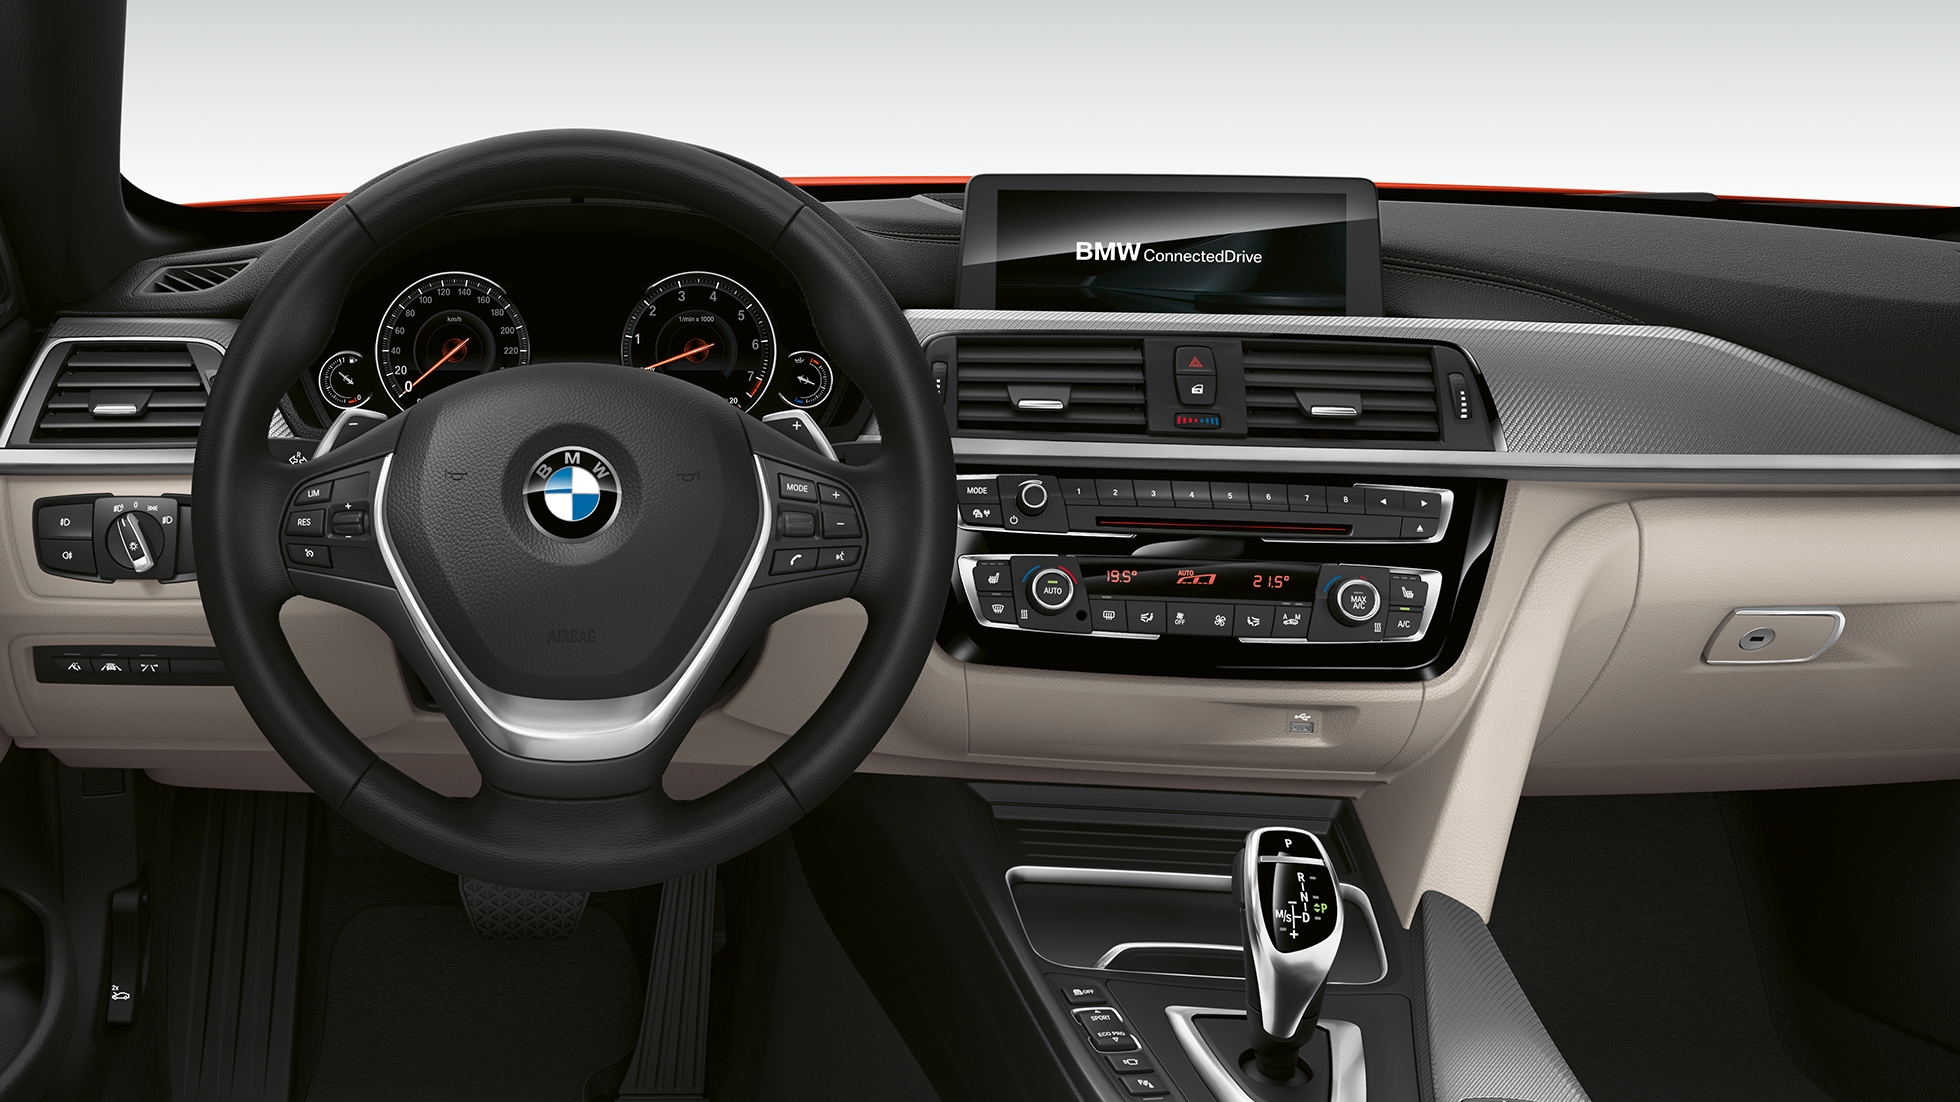 BMW Serie 4 Convertible, interior del Modelo Luxury Line